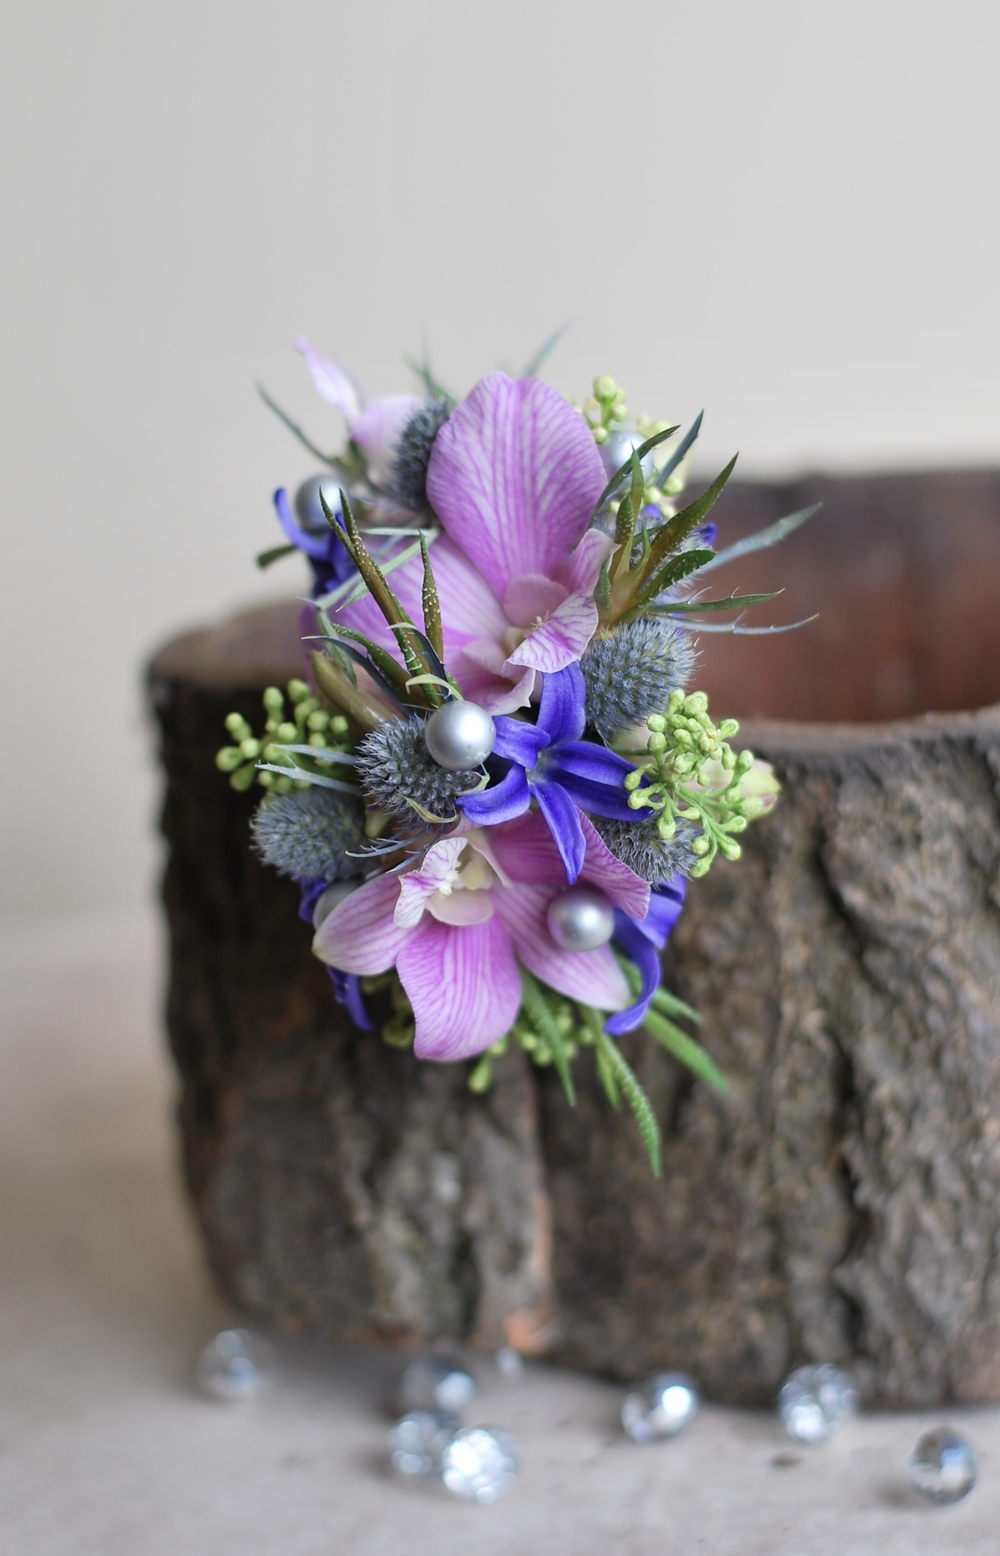 Floral Jewellery/Corsage for weddings, Birthdays, Anniversary and or Mother's day gift and also for Graduation prom by Floral Design by Lili ,  Fraser Valley Florist .